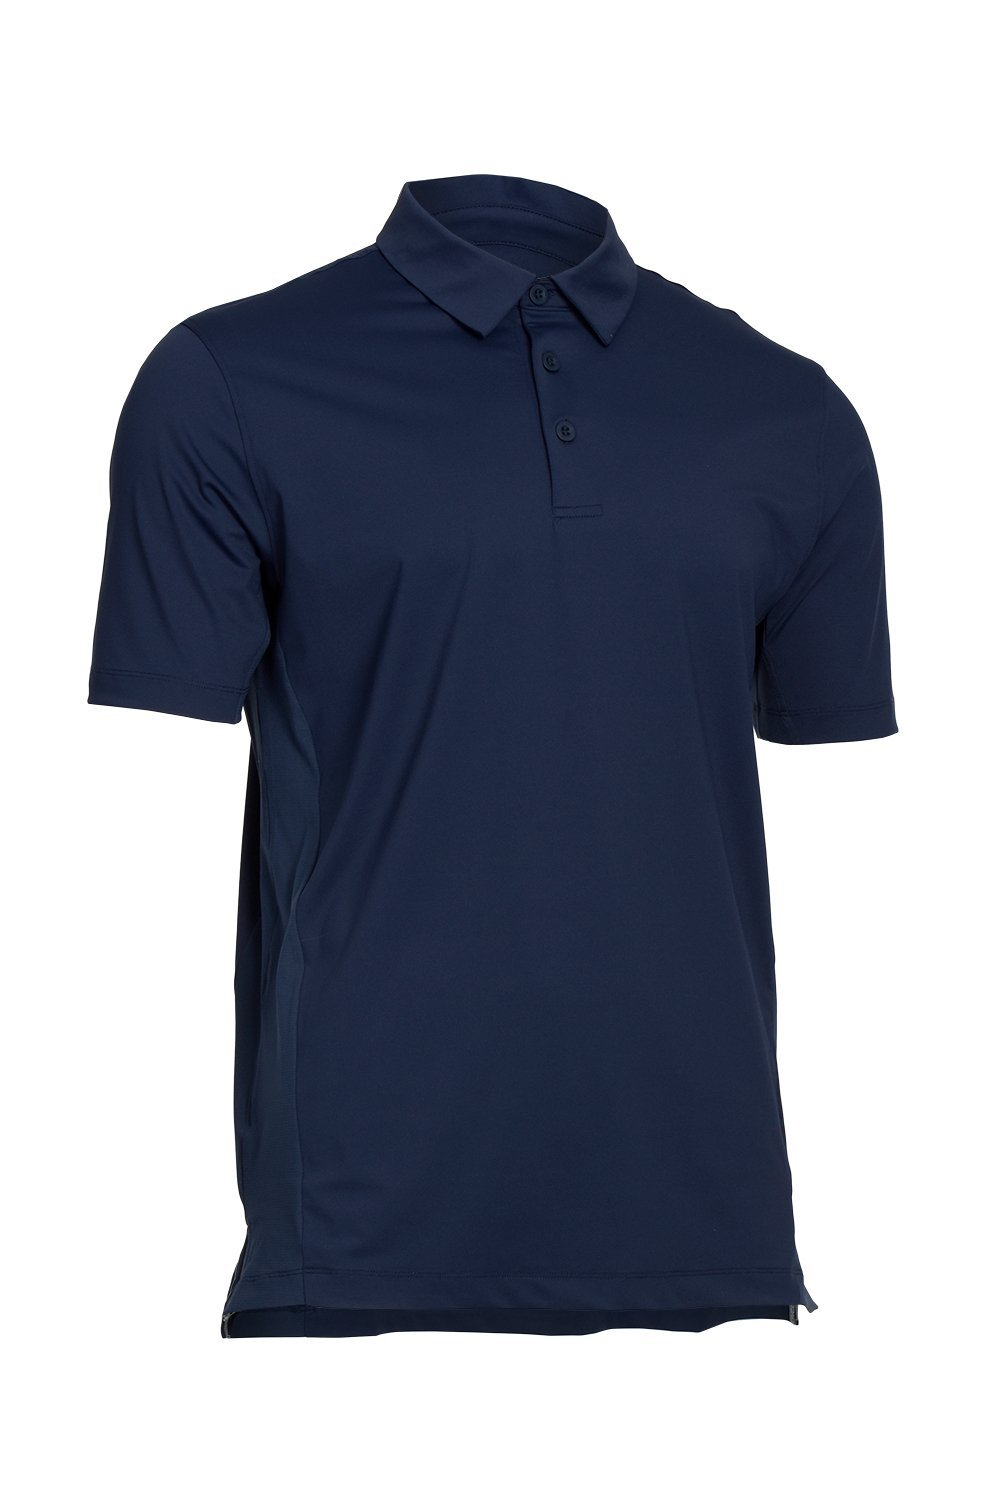 Stone - Slim Fit - Navy - Covel Men's Apparel